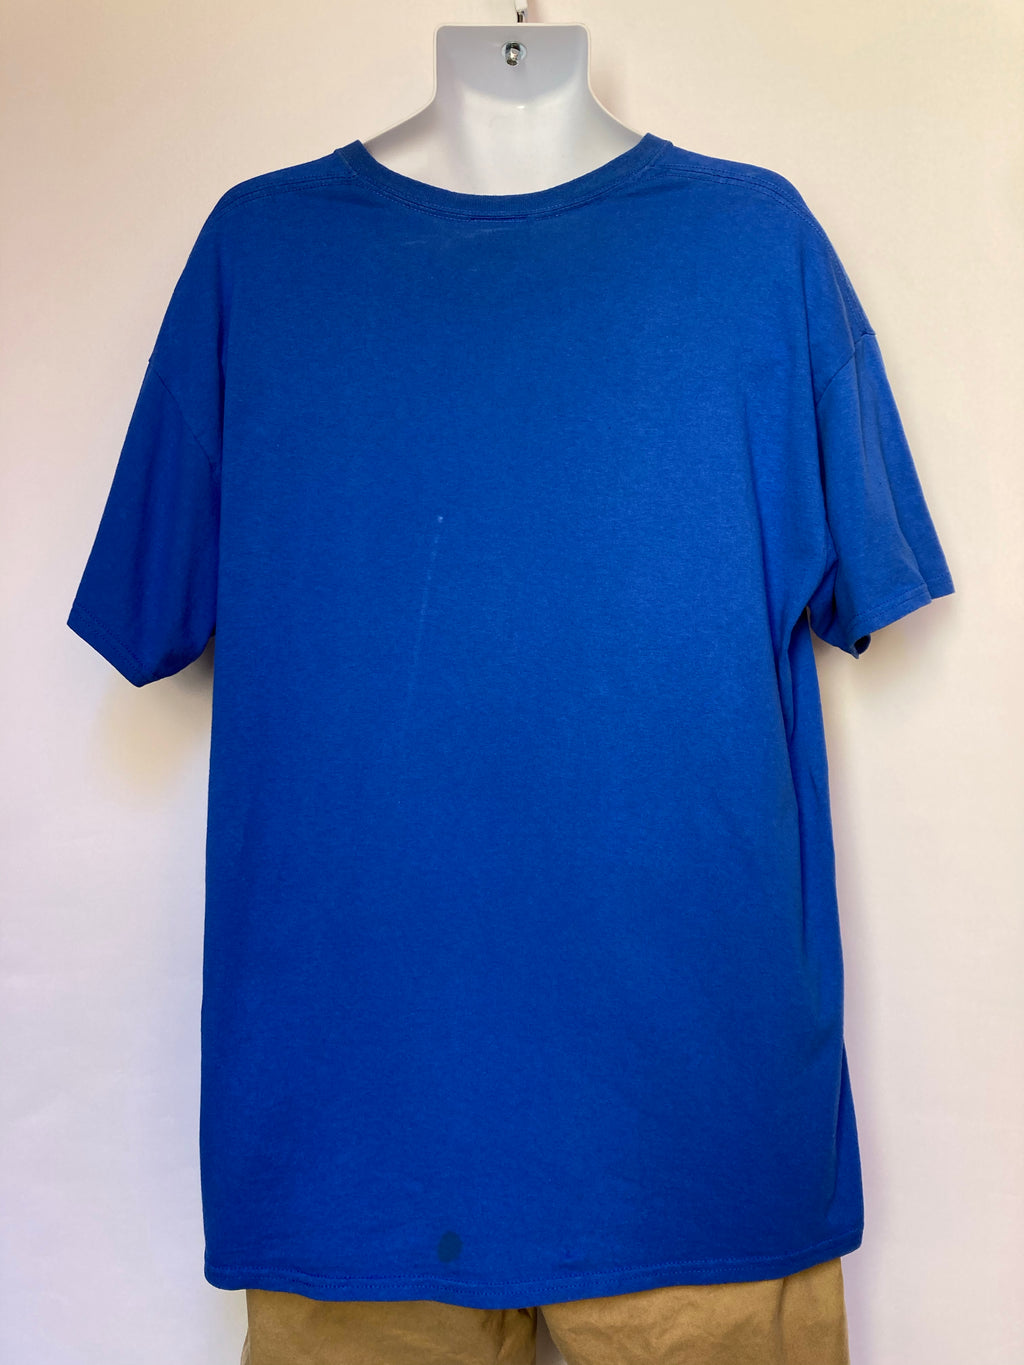 Blue Thrasher Tee - AS IS - wear